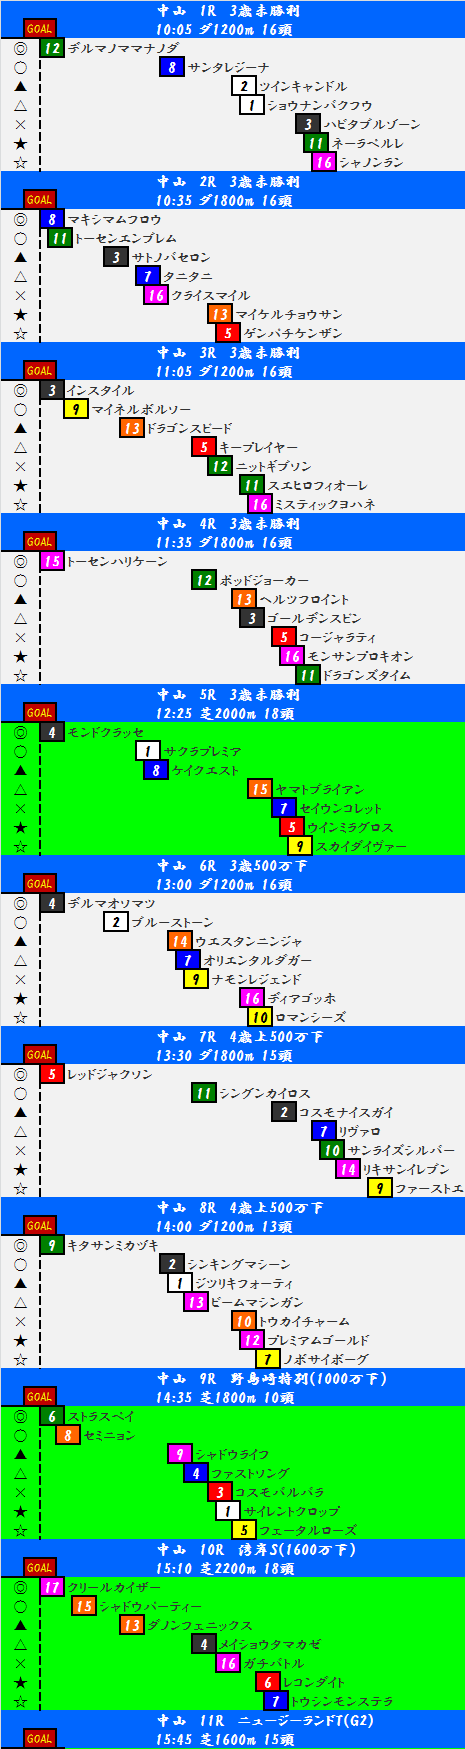 201404121.png